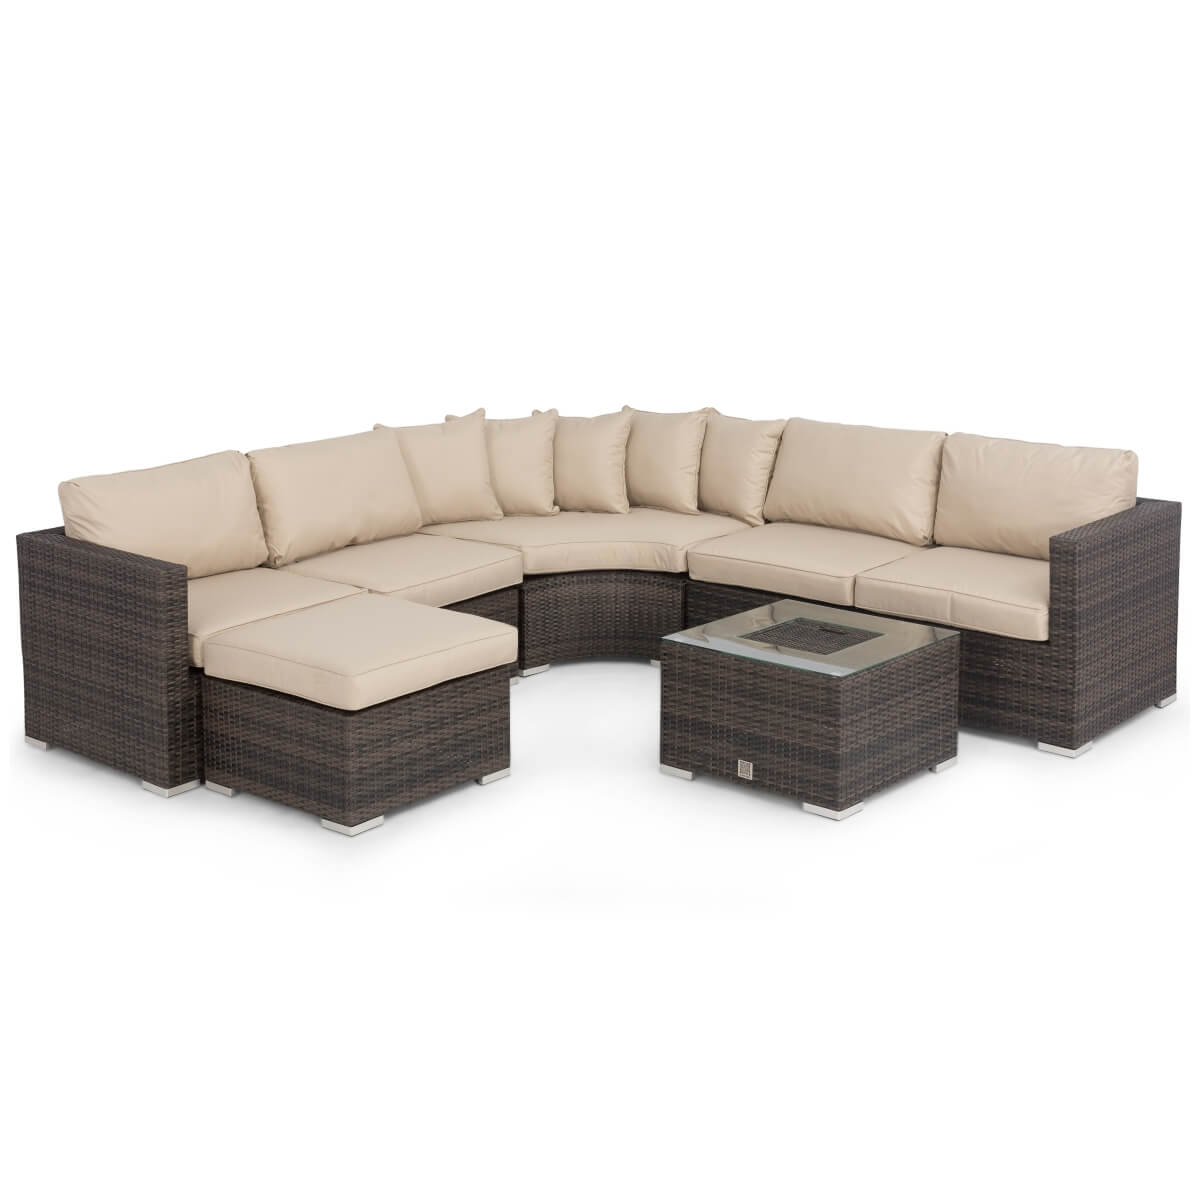 barcelona modular rattan corner sofa set air furniture maze with ice bucket fla